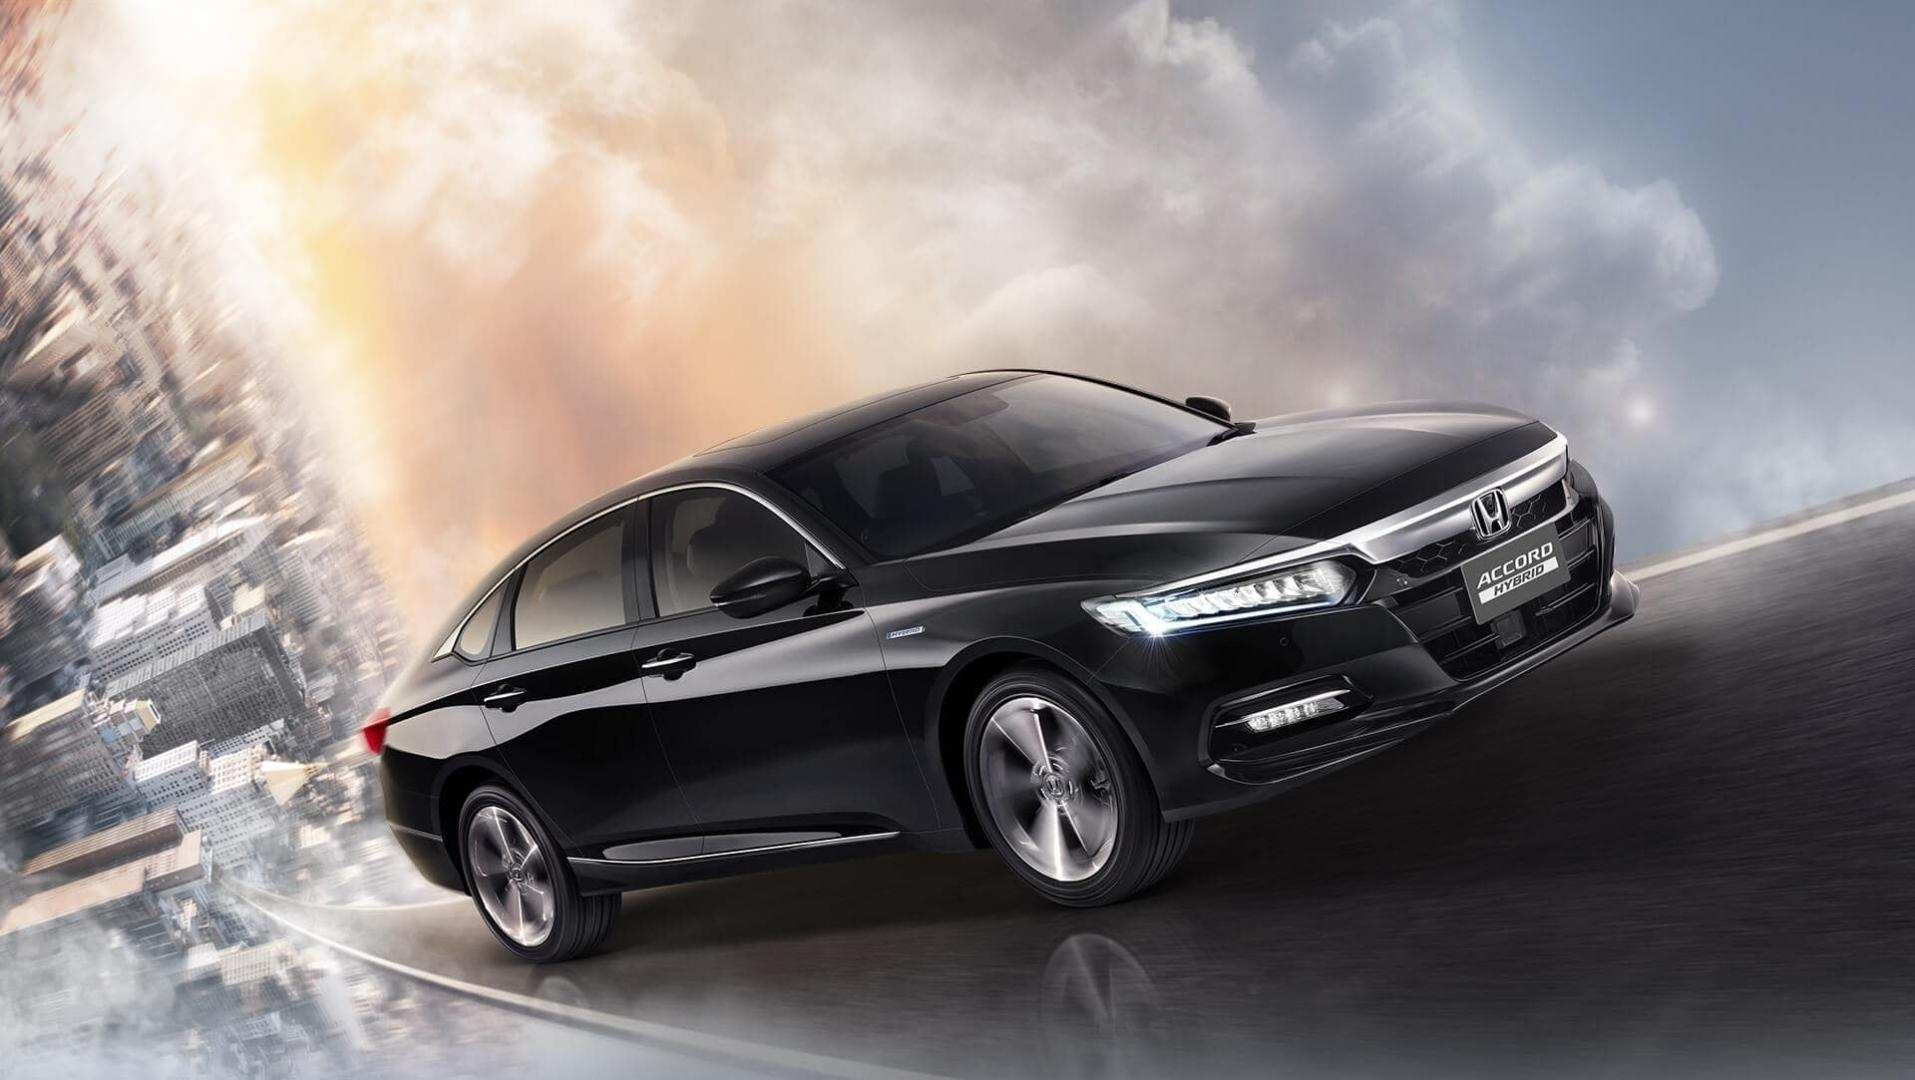 76 The New Honda Accord Hybrid 2019 Price And Release Date Pictures by New Honda Accord Hybrid 2019 Price And Release Date